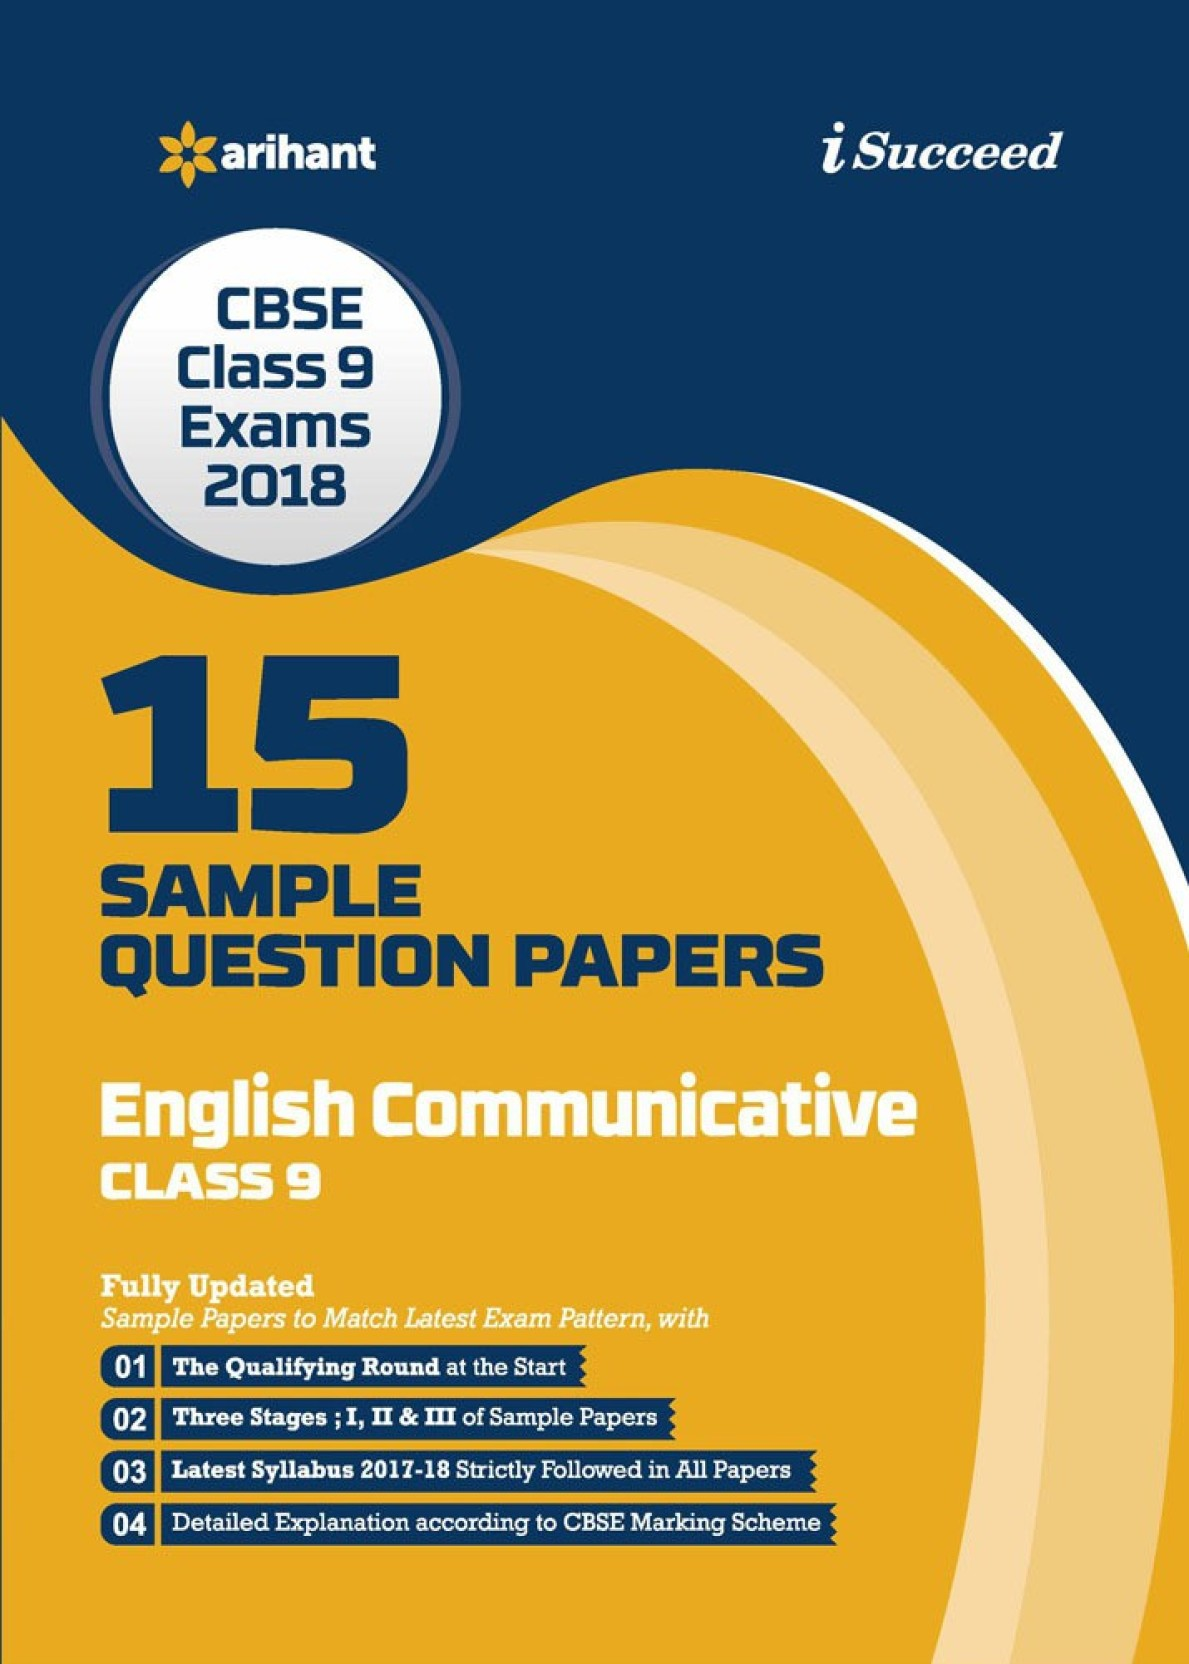 ... Class 9th Exam 2018 15 Sample Question Papers English Communicative.  Share